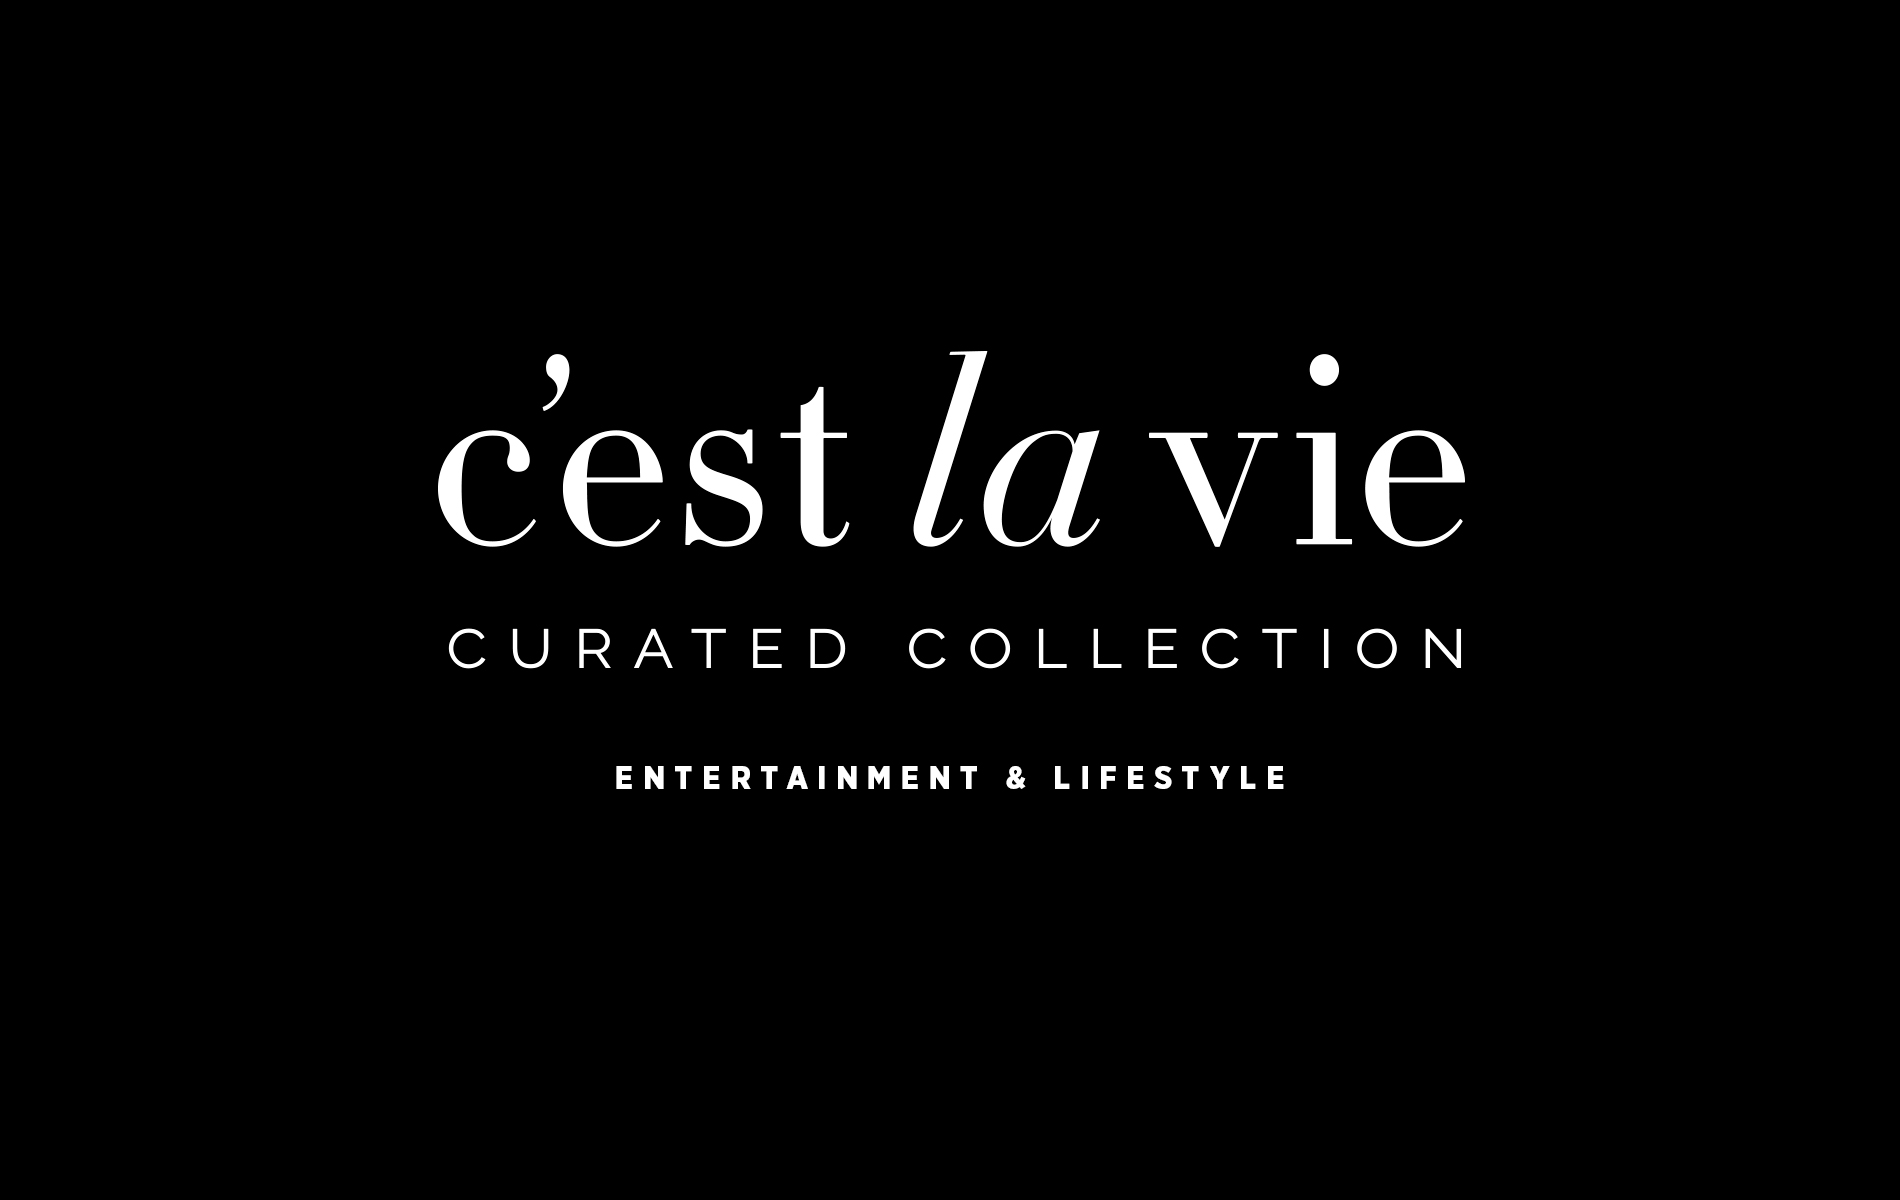 VIE Magazine March 2019 Entertainment & Lifestyle Issue - C'est la VIE